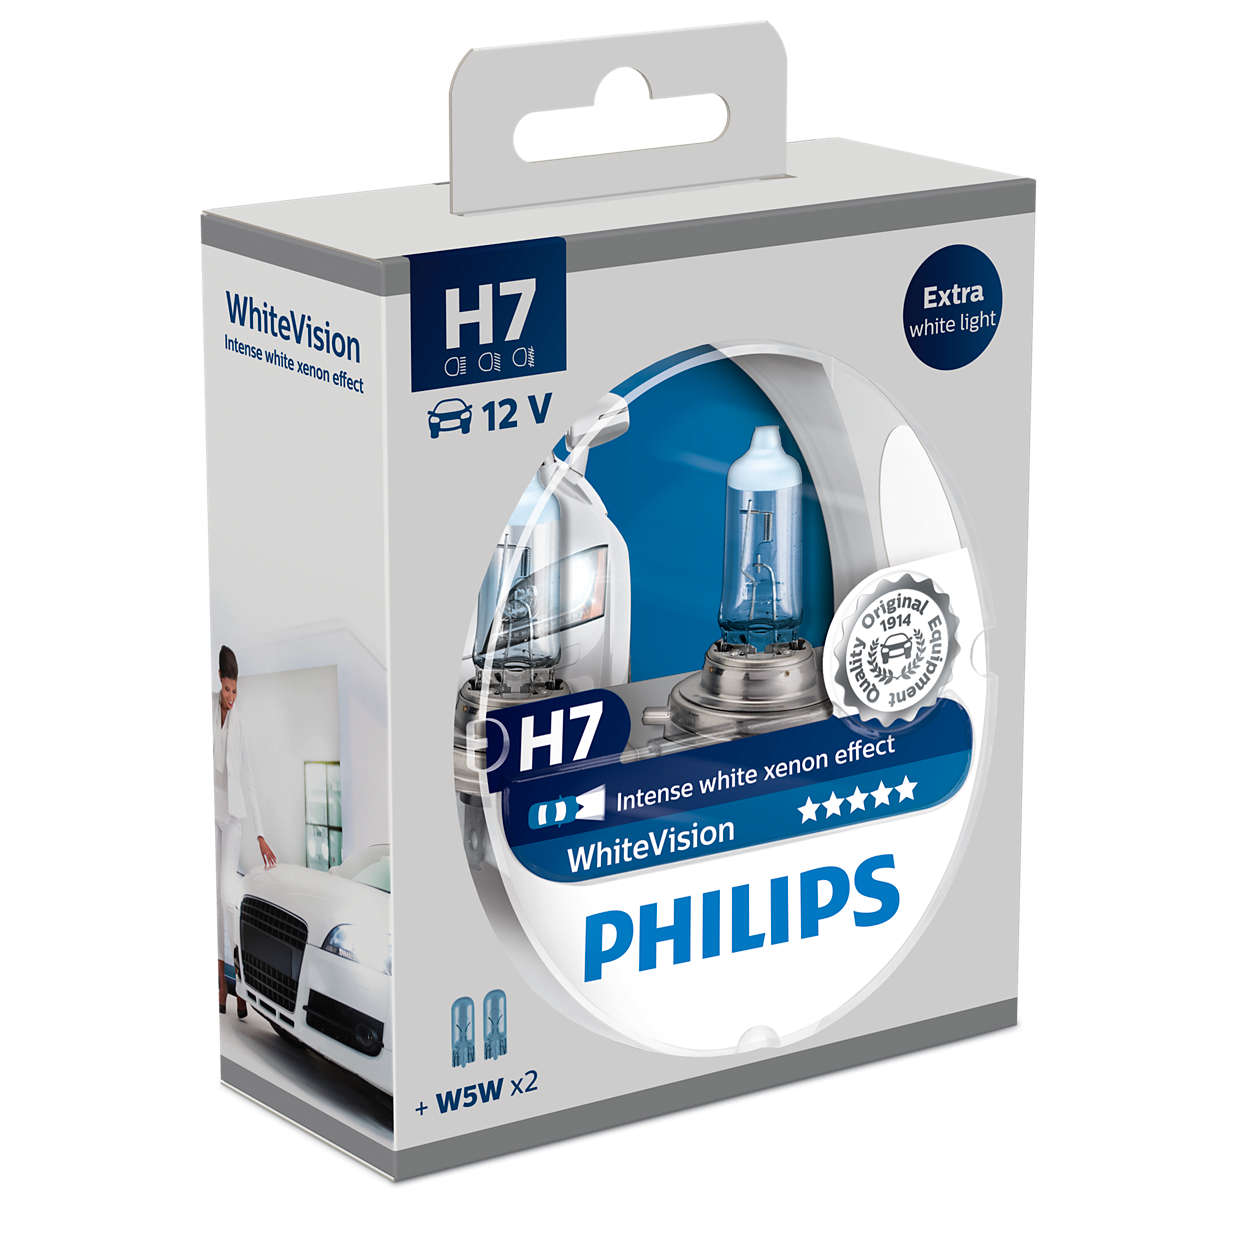 Žiarovka H7 PHILIPS WhiteVision + W5W - Set 2ks